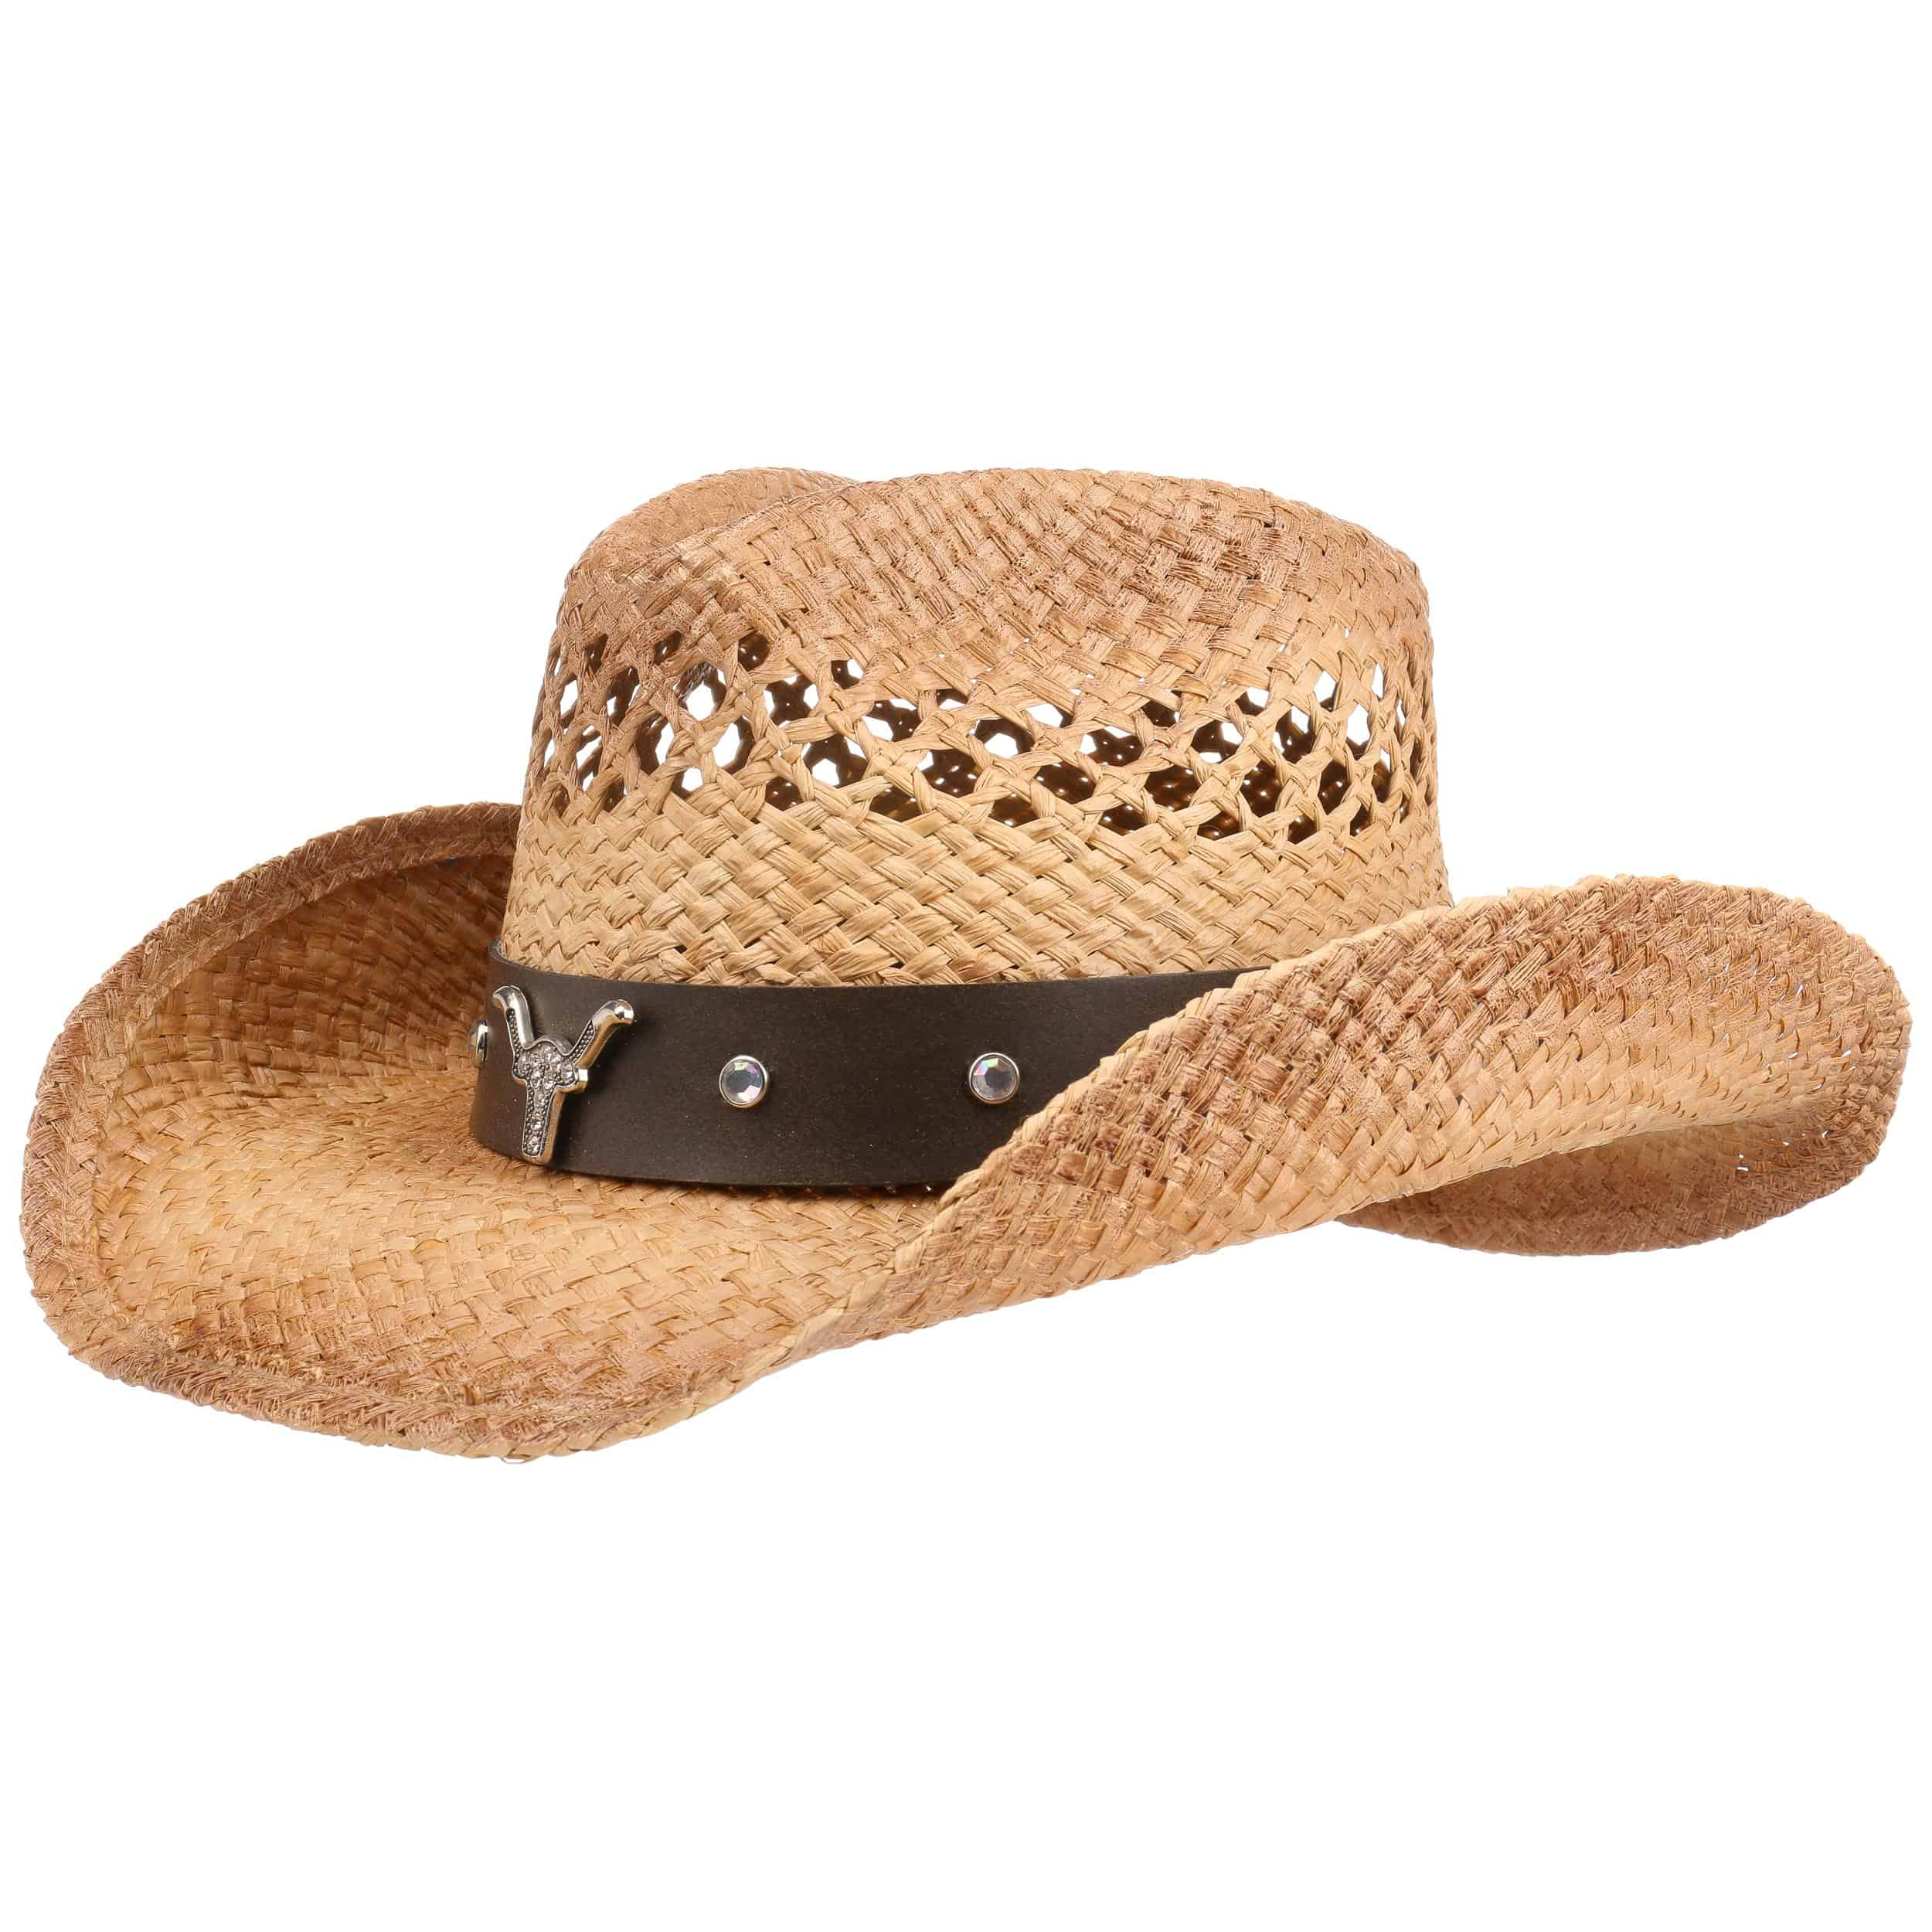 ... Longhorn Western Straw Hat by Conner - nature 7 dd70b305894f